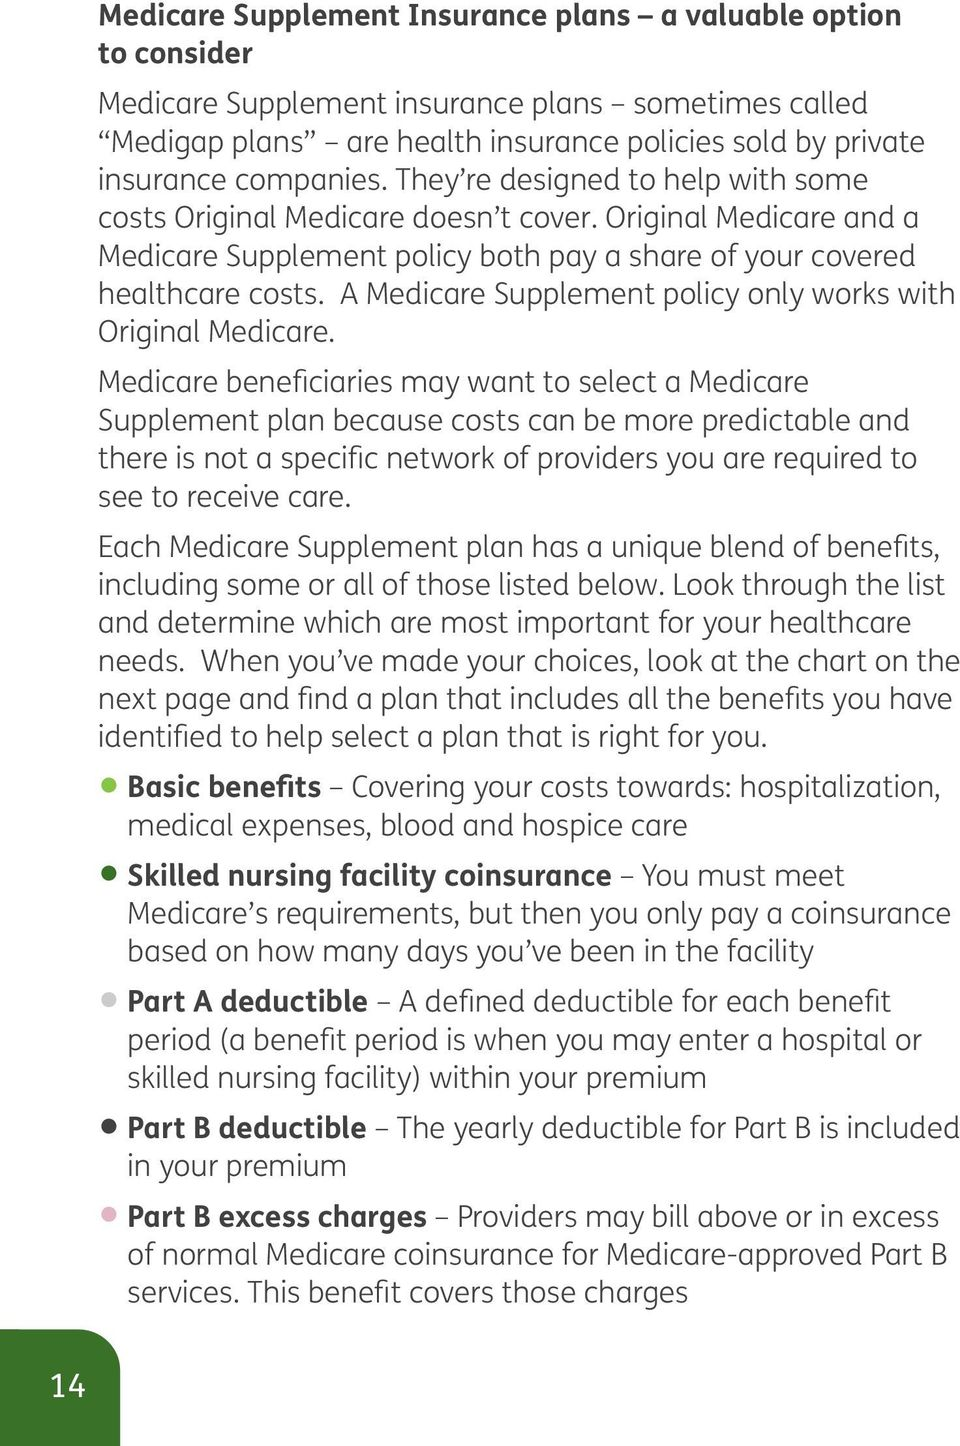 A Medicare Supplement policy only works with Original Medicare.